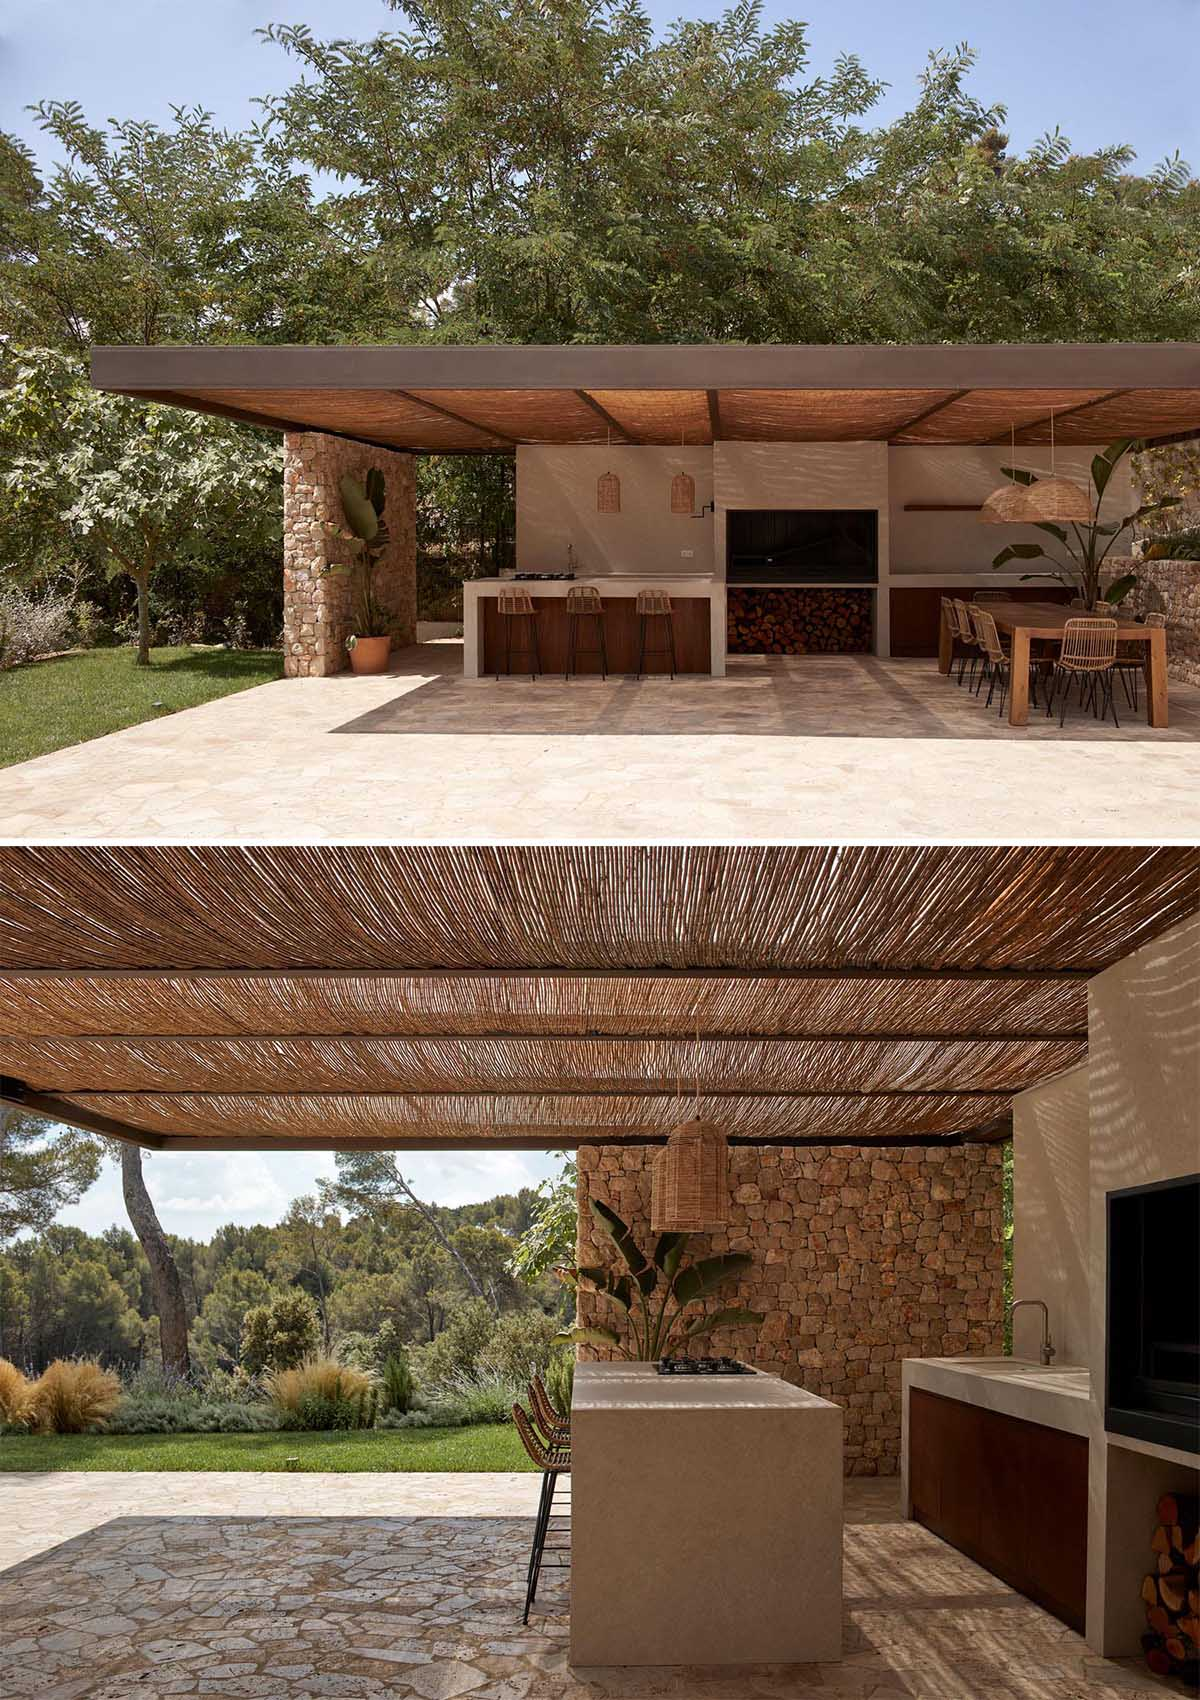 A modern shaded outdoor space with kitchen / bbq and a dining area.